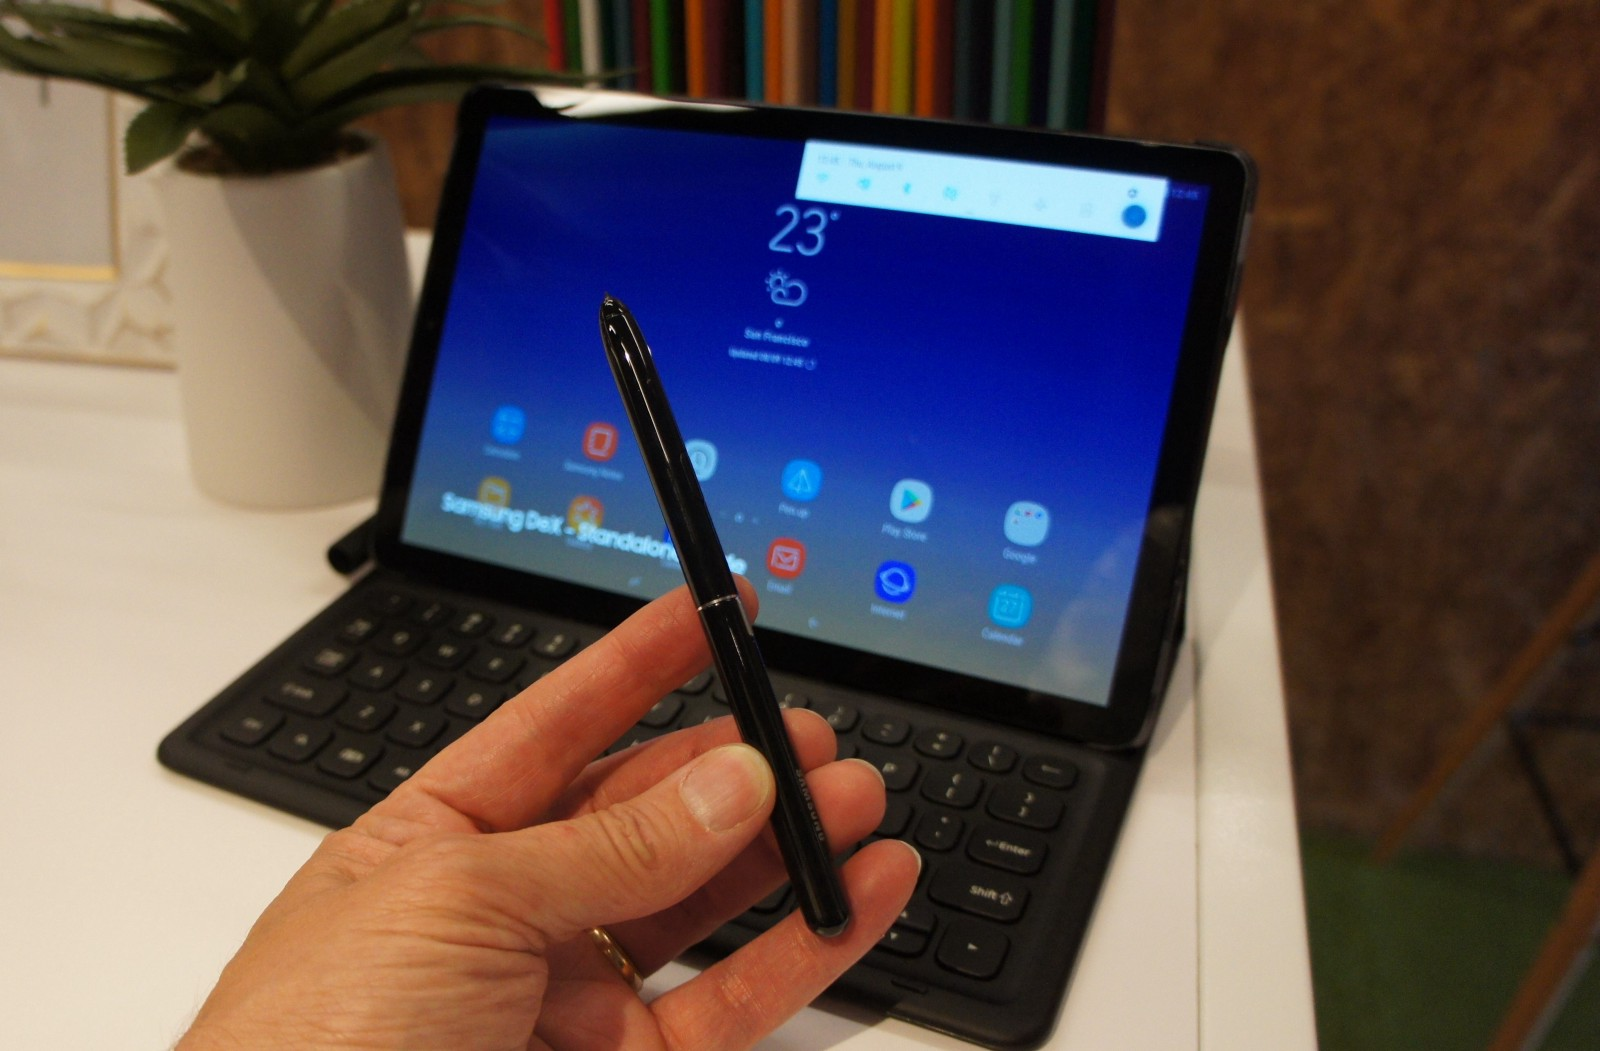 The new Samsung Galaxy Tab S4 puts Android to work